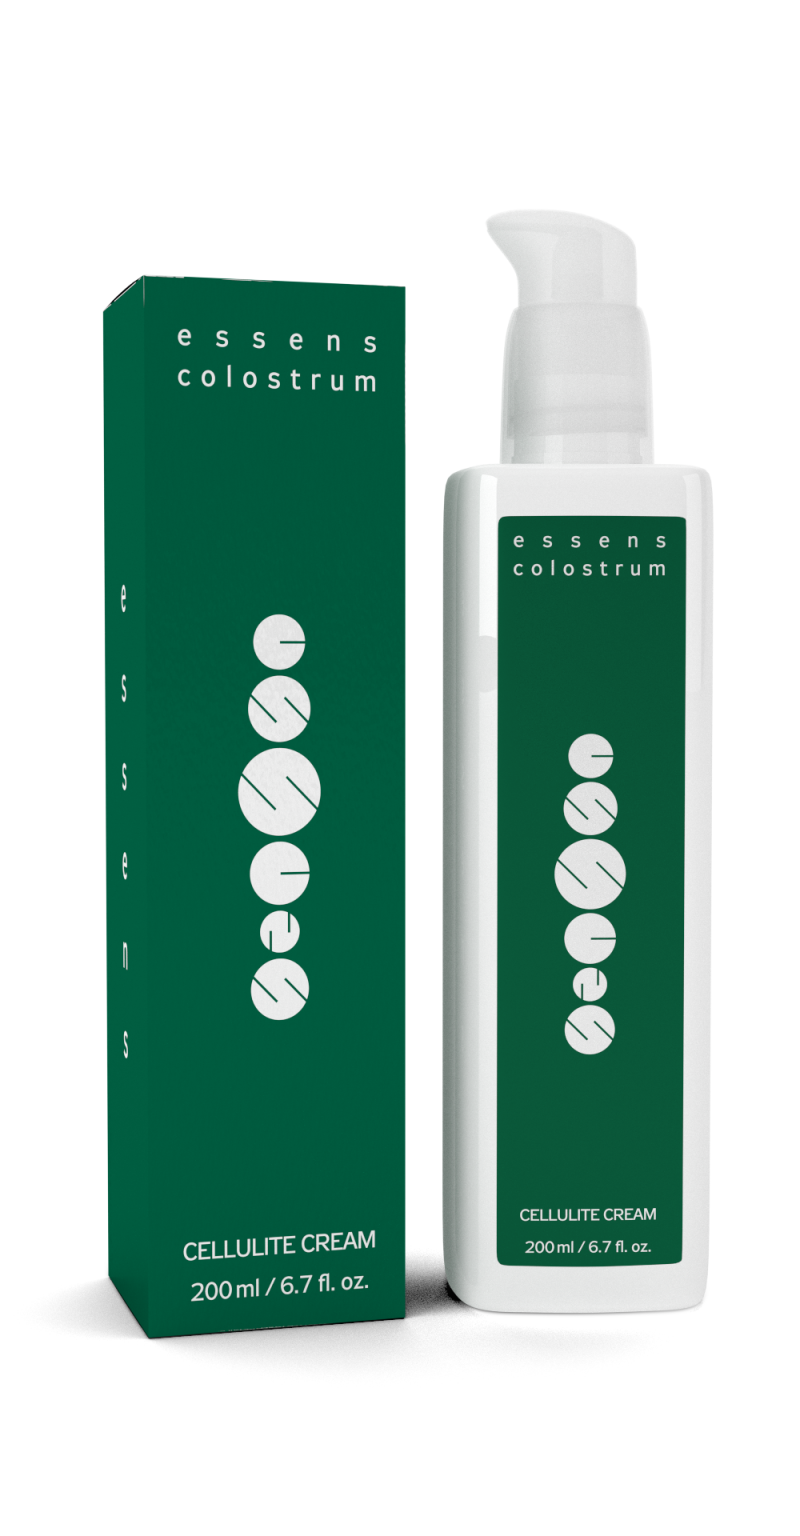 Colostrum Cellulite Cream 200ml